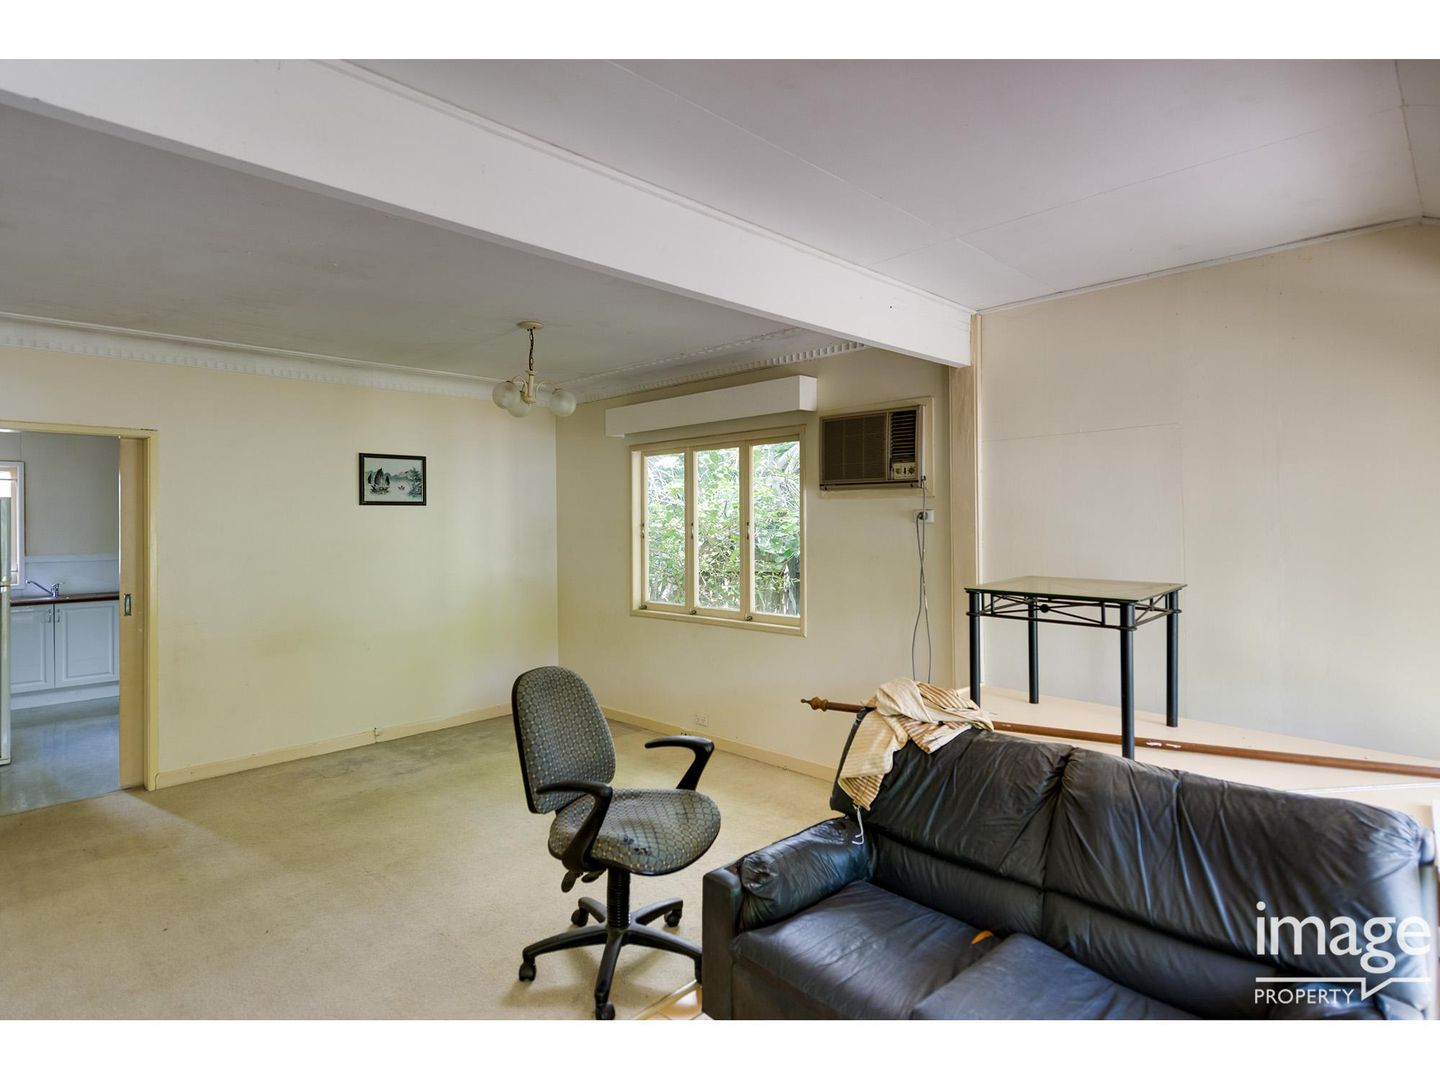 16 Riverview Terrace, Indooroopilly QLD 4068, Image 1